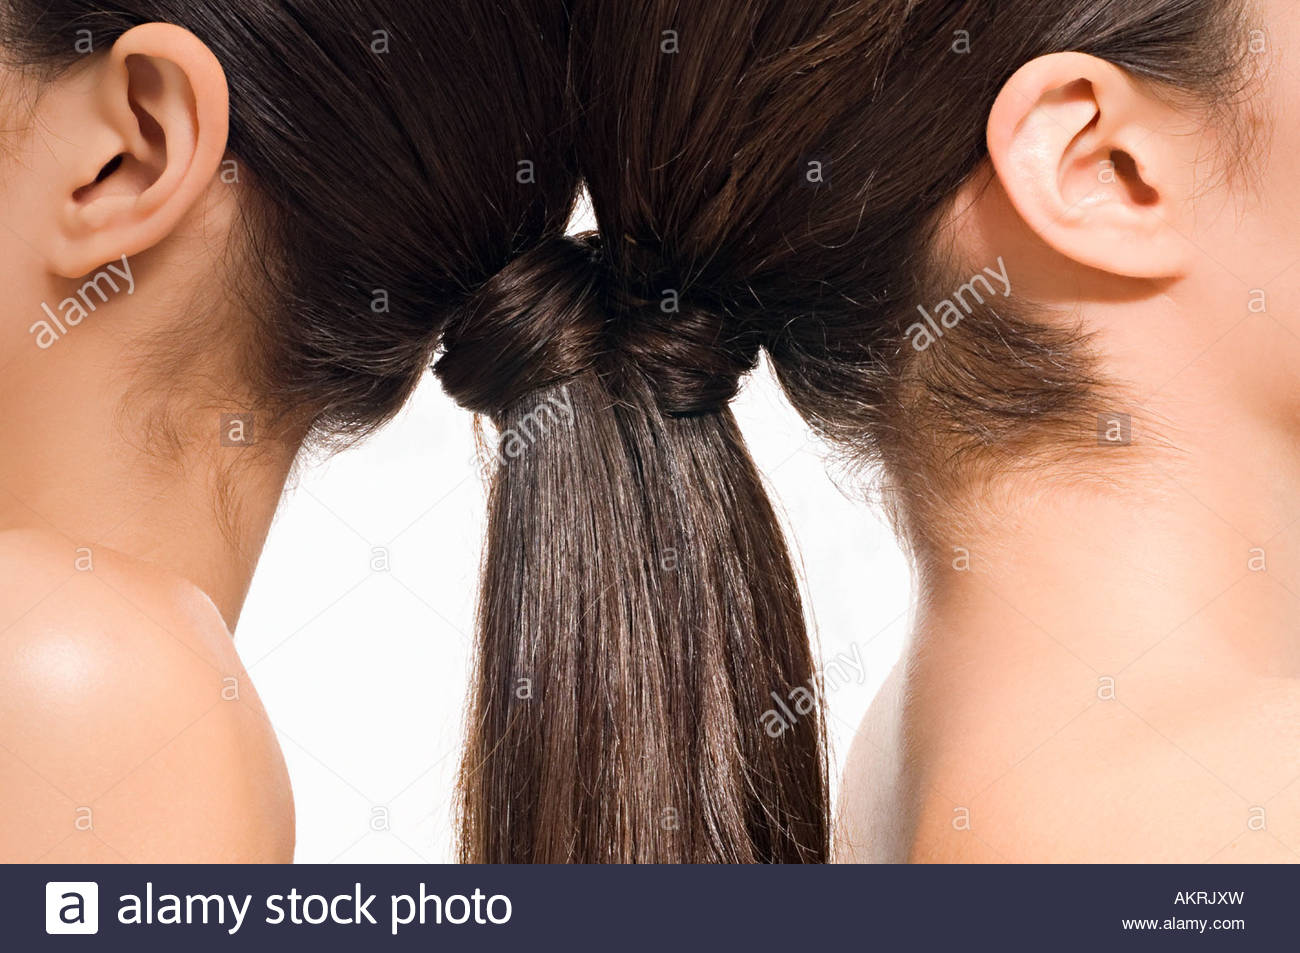 Women with brunette ponytails - Stock Image